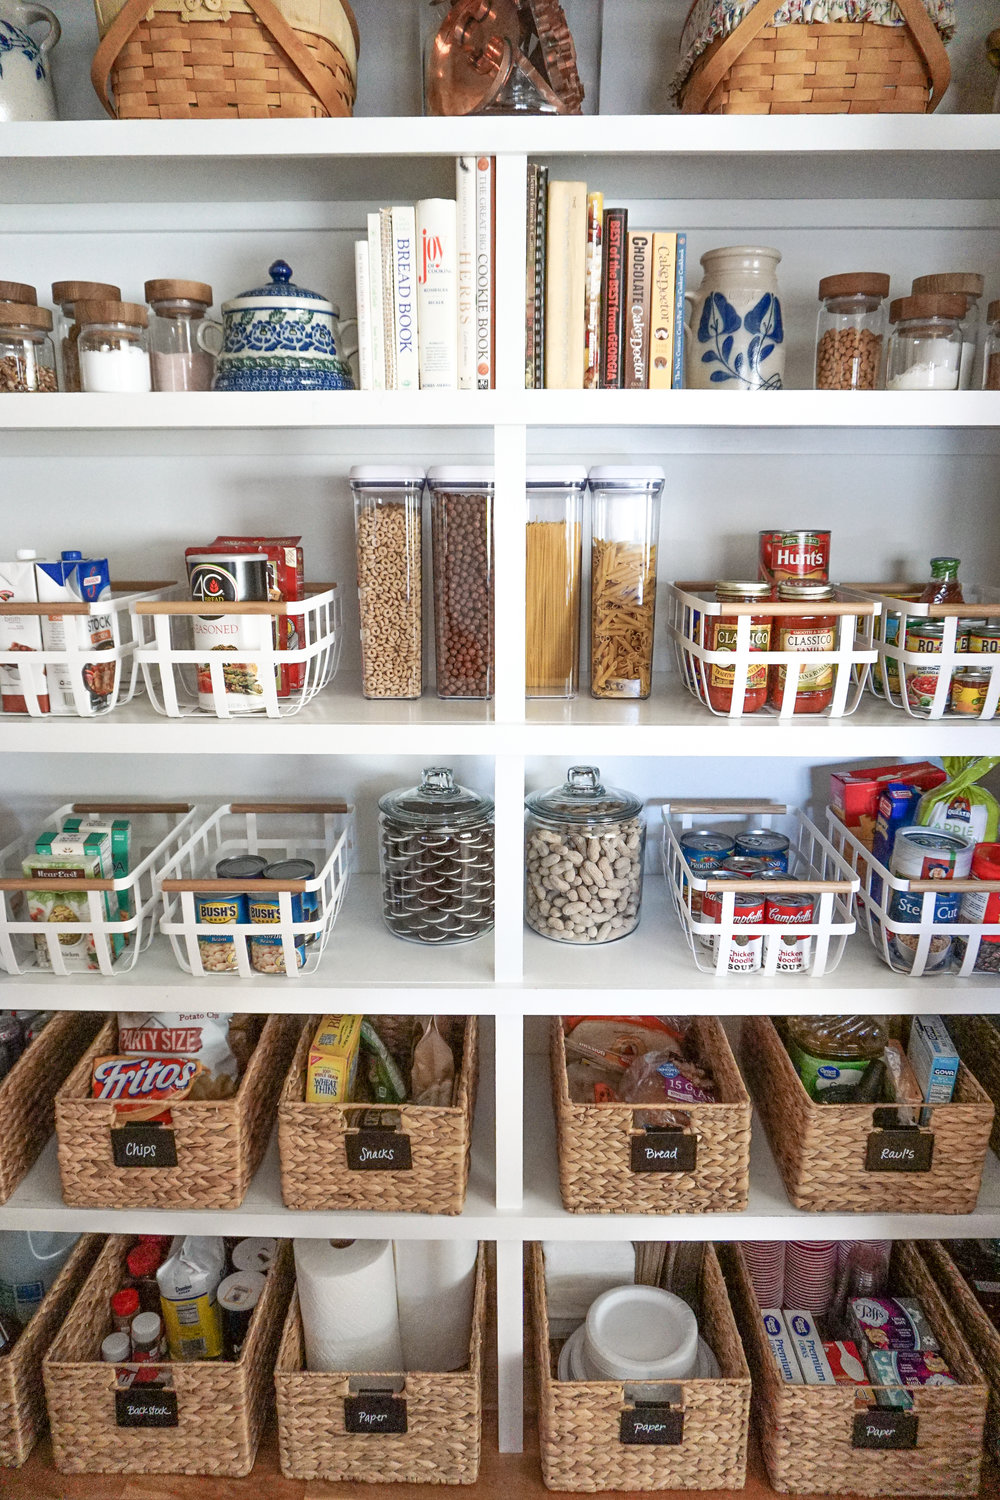 House of Turk | Reach In Pantry Organization and Design